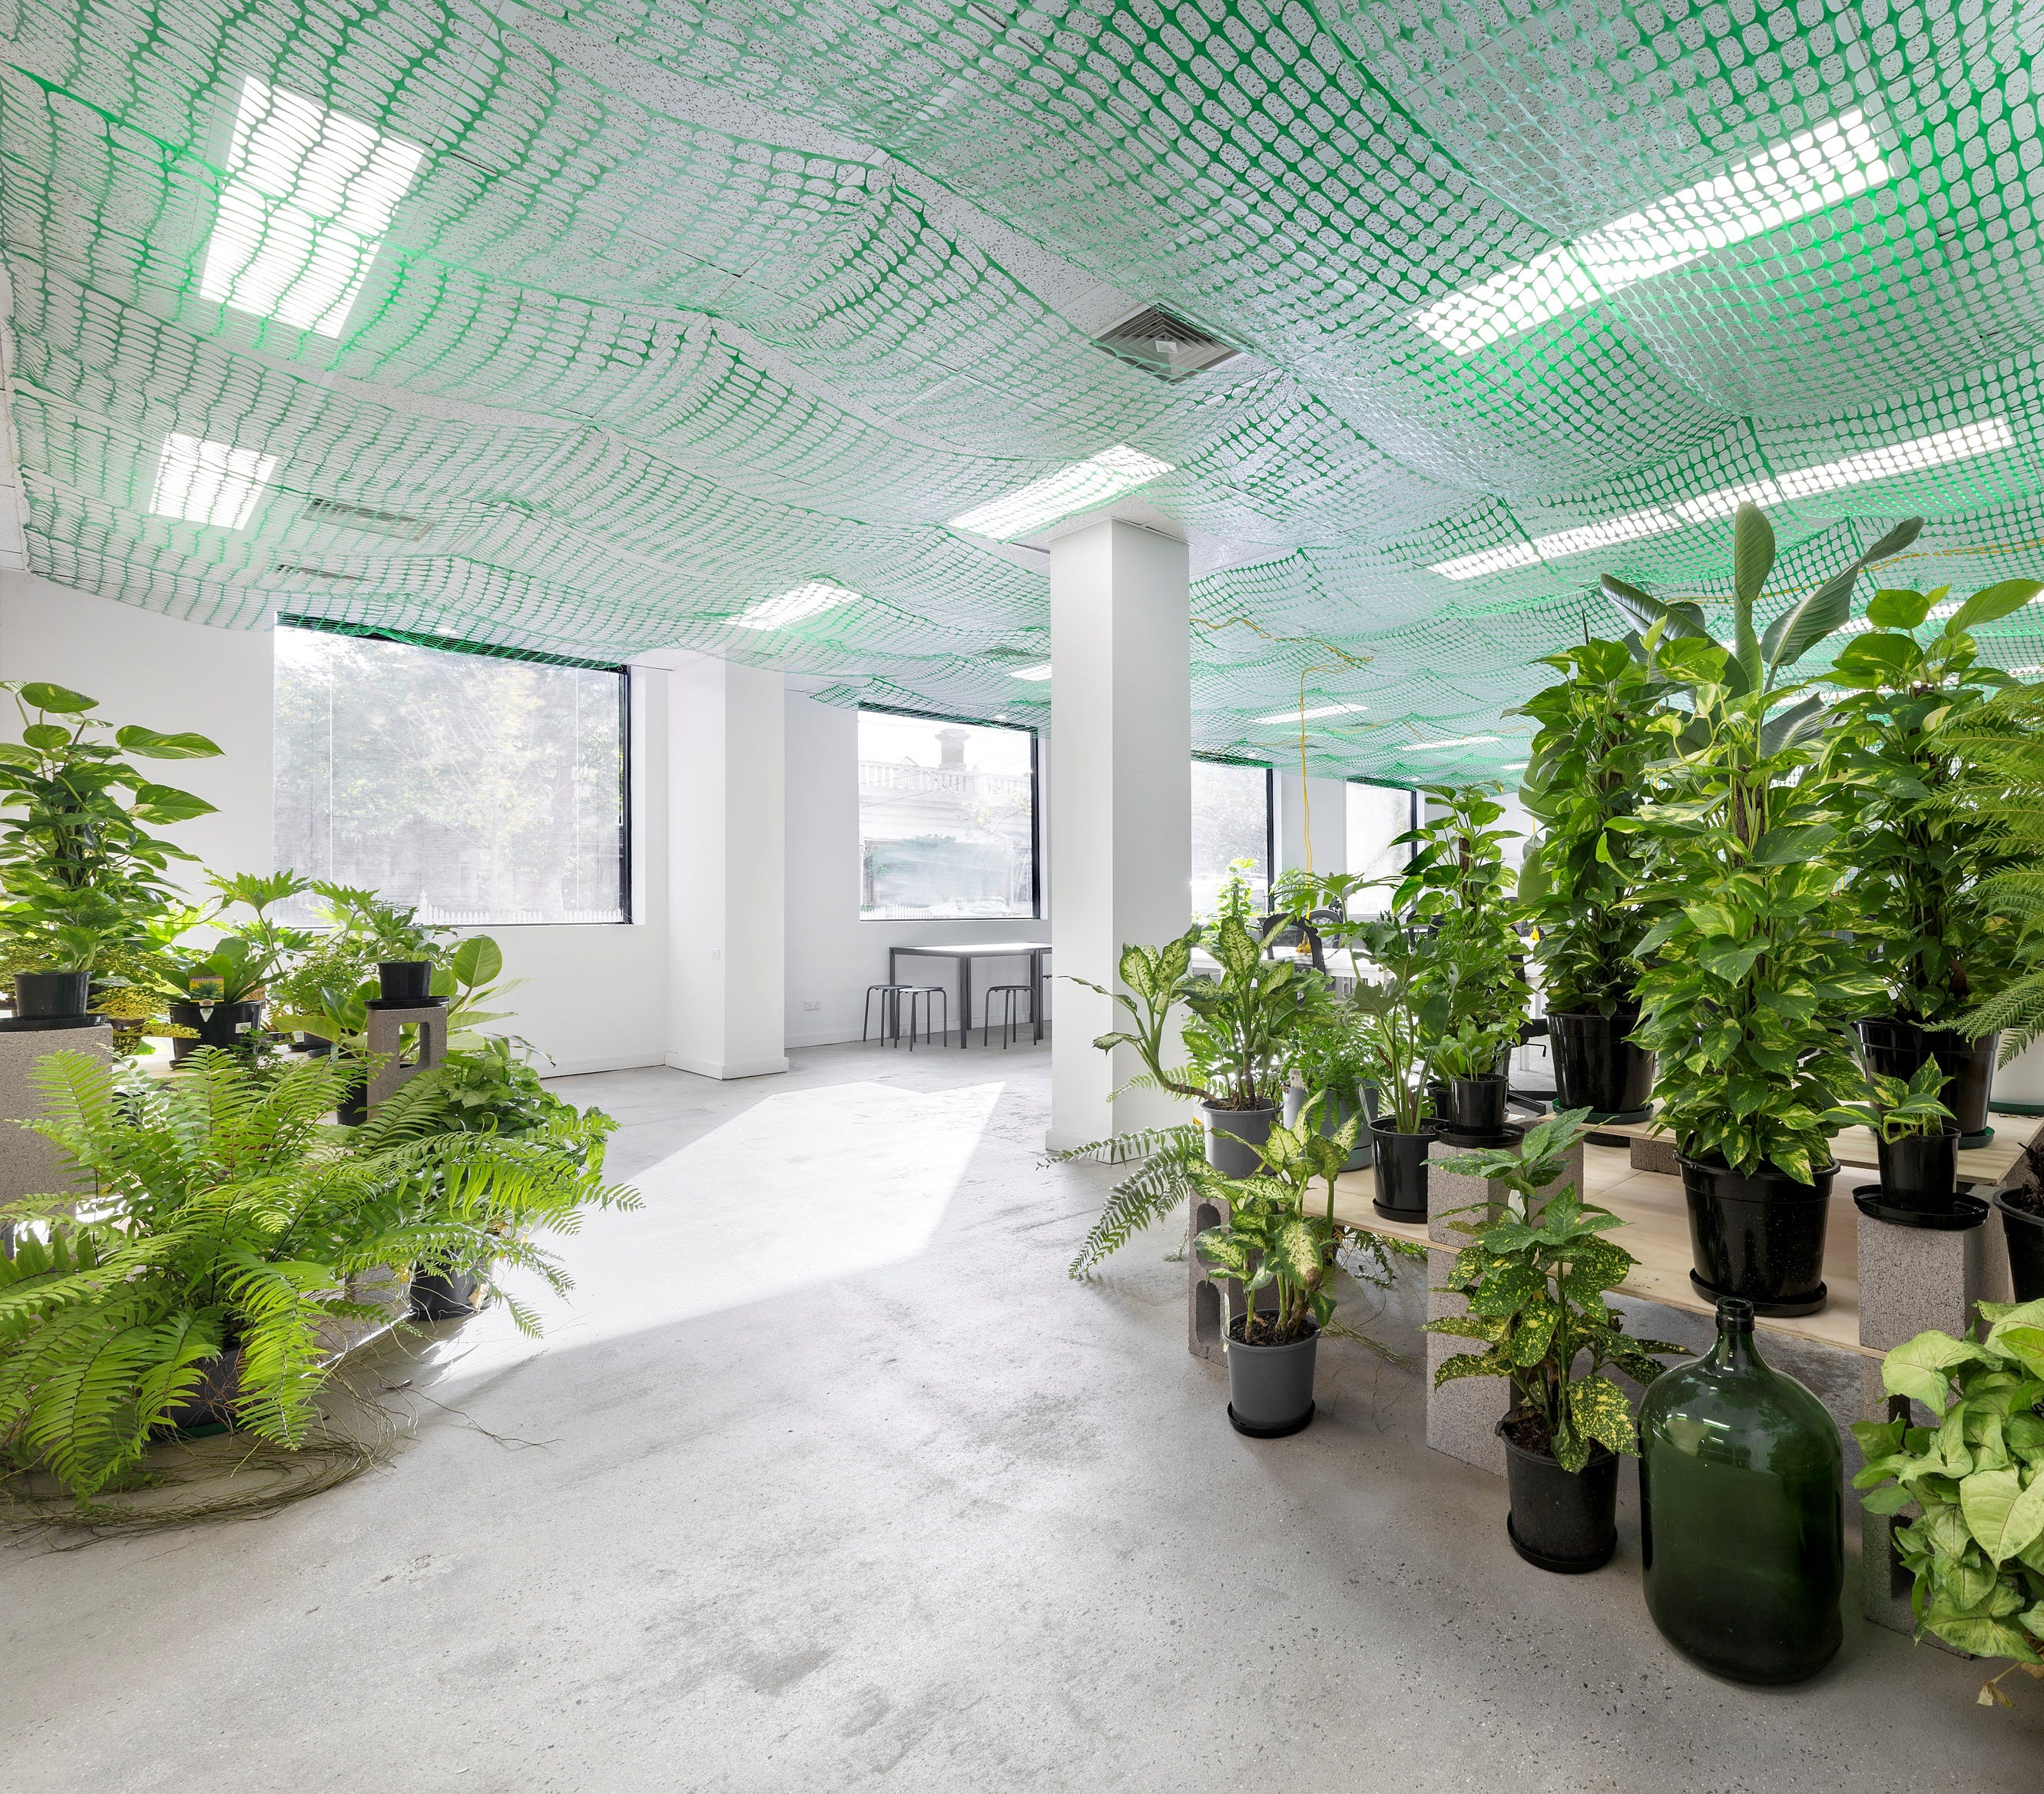 Co-work in a naturally-lit, plant-filled office environment, image 1